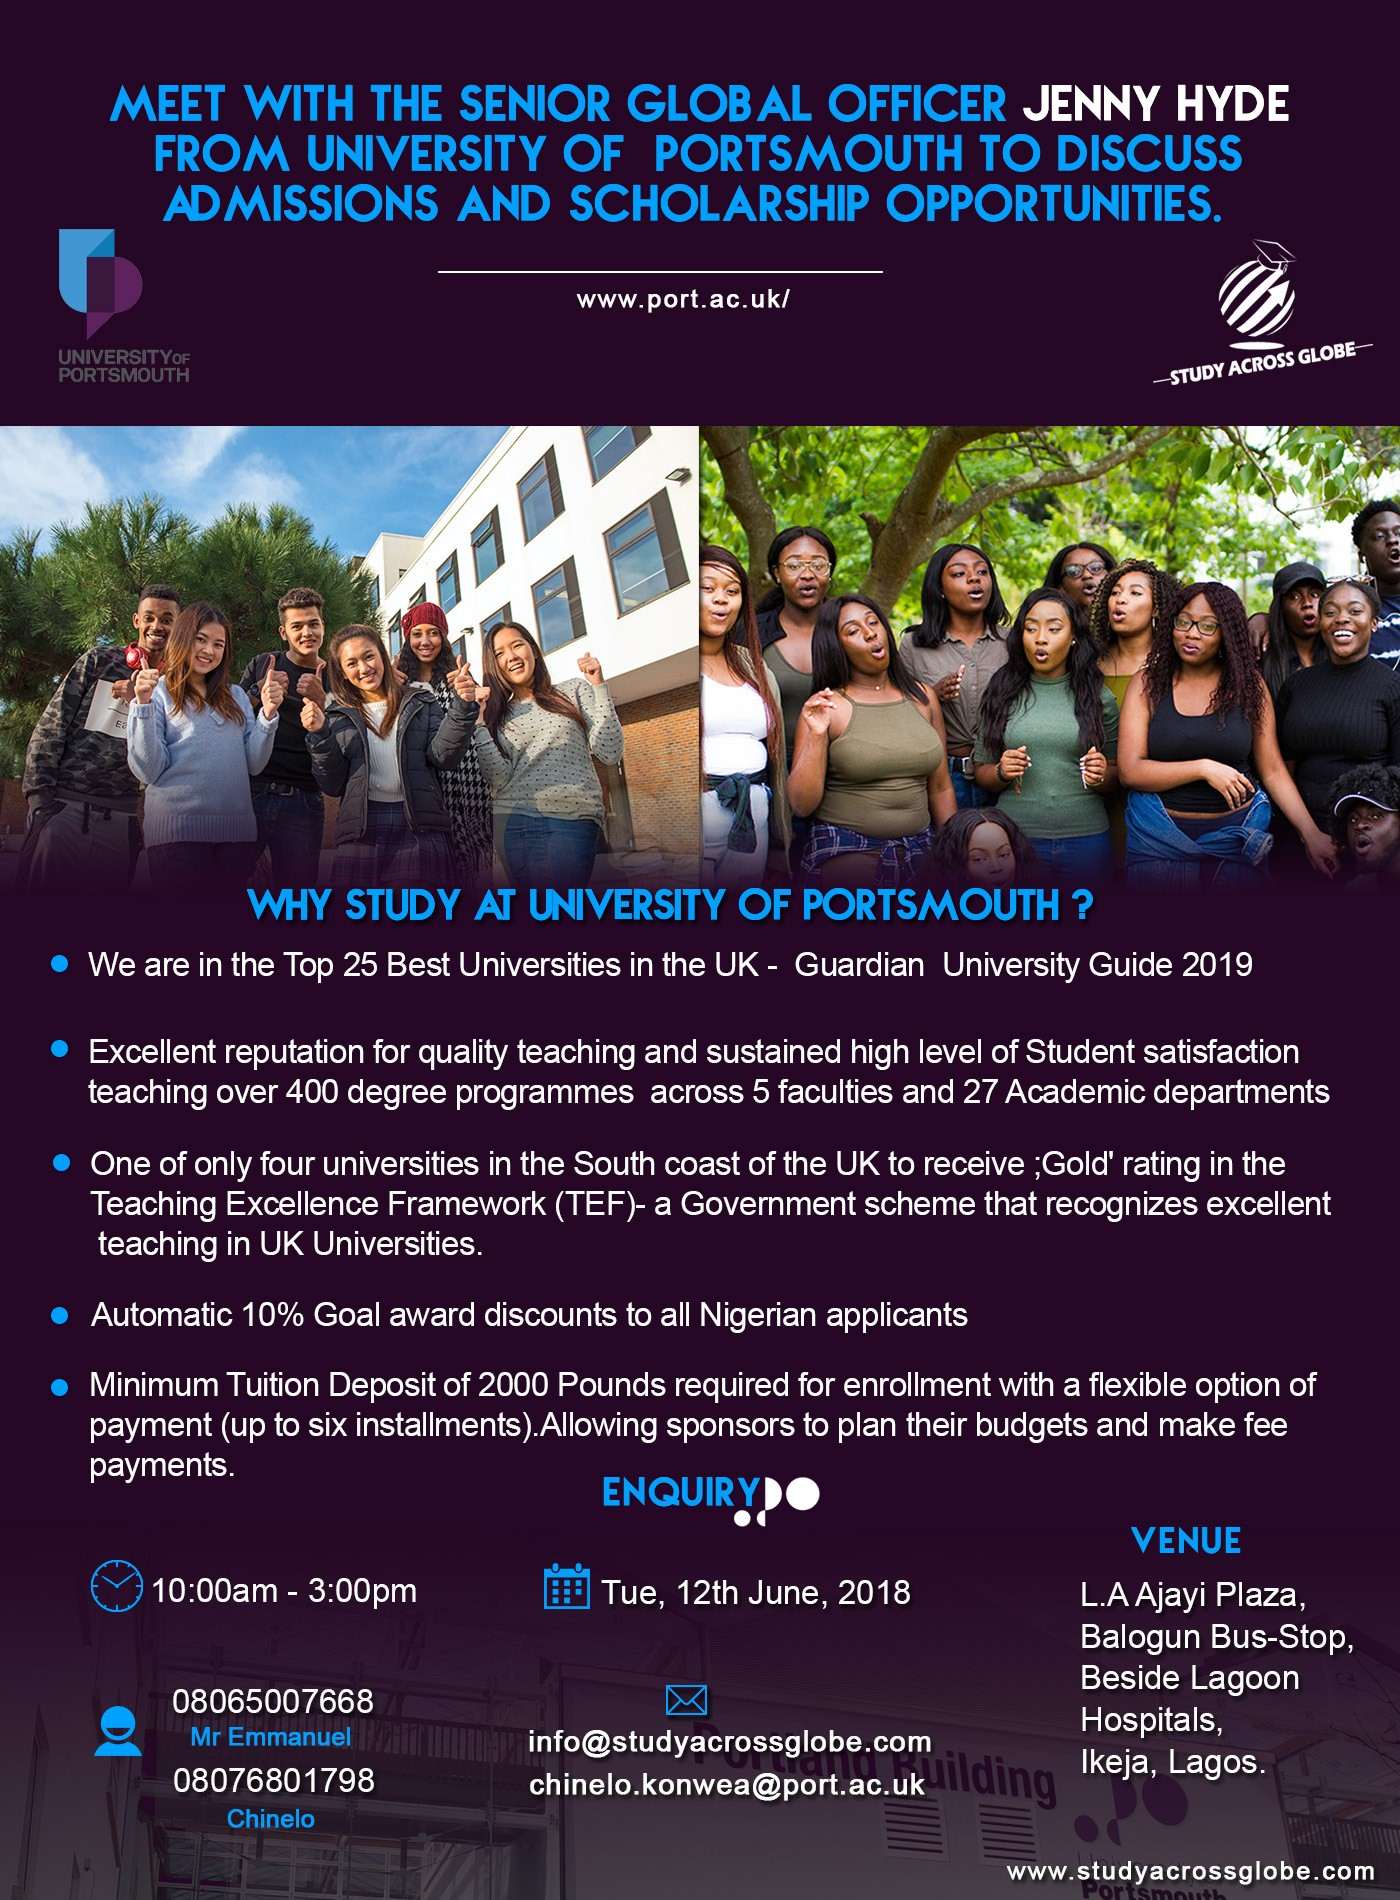 Meet with Jenny Hyde the Senior Global Officer from The University Of Portsmouth to discuss admissions